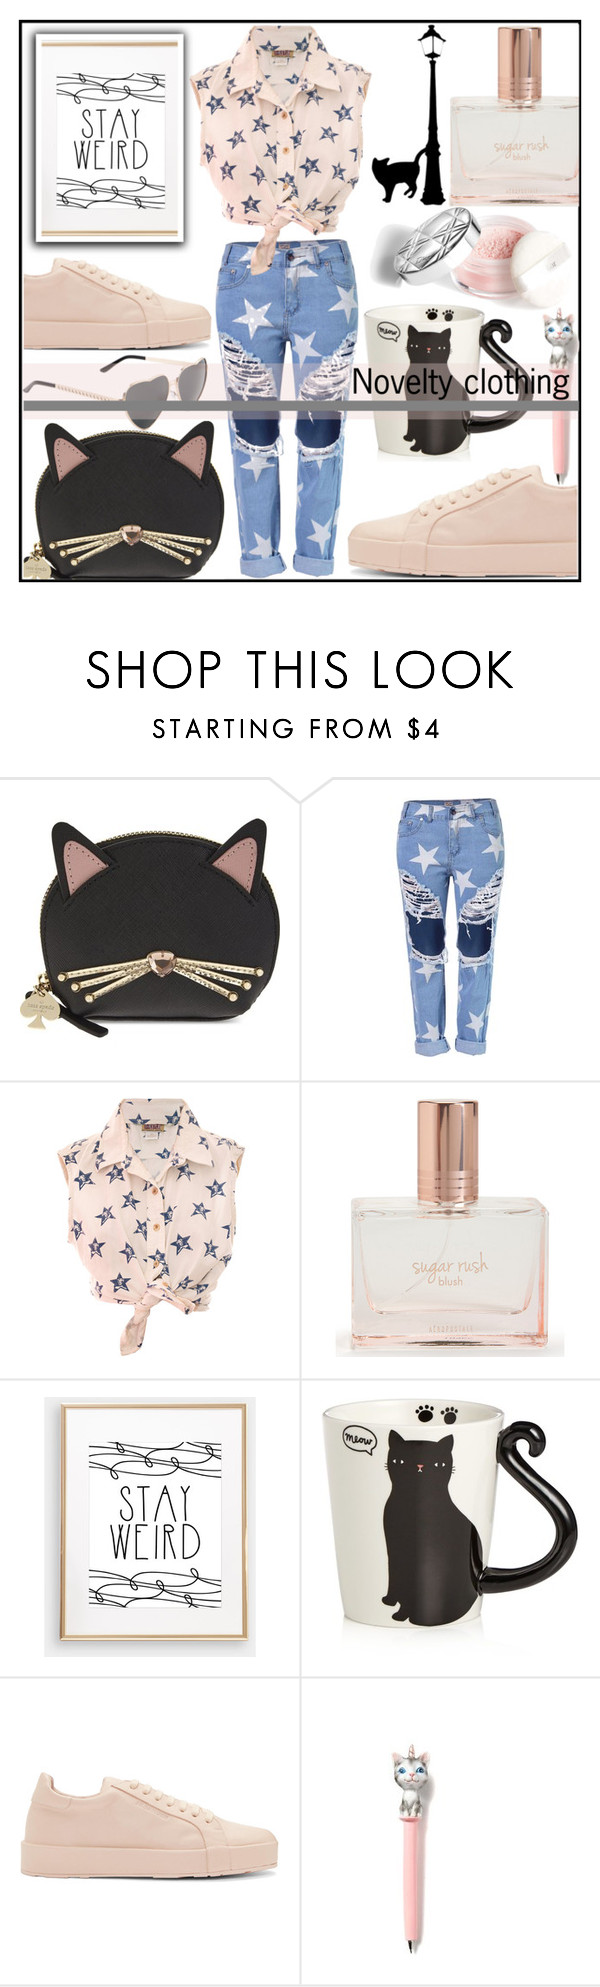 """""""Be weird . Stay weird"""" by kawtar-el ❤ liked on Polyvore featuring Kate Spade, Aéropostale, Tri-coastal Design and Jil Sander"""